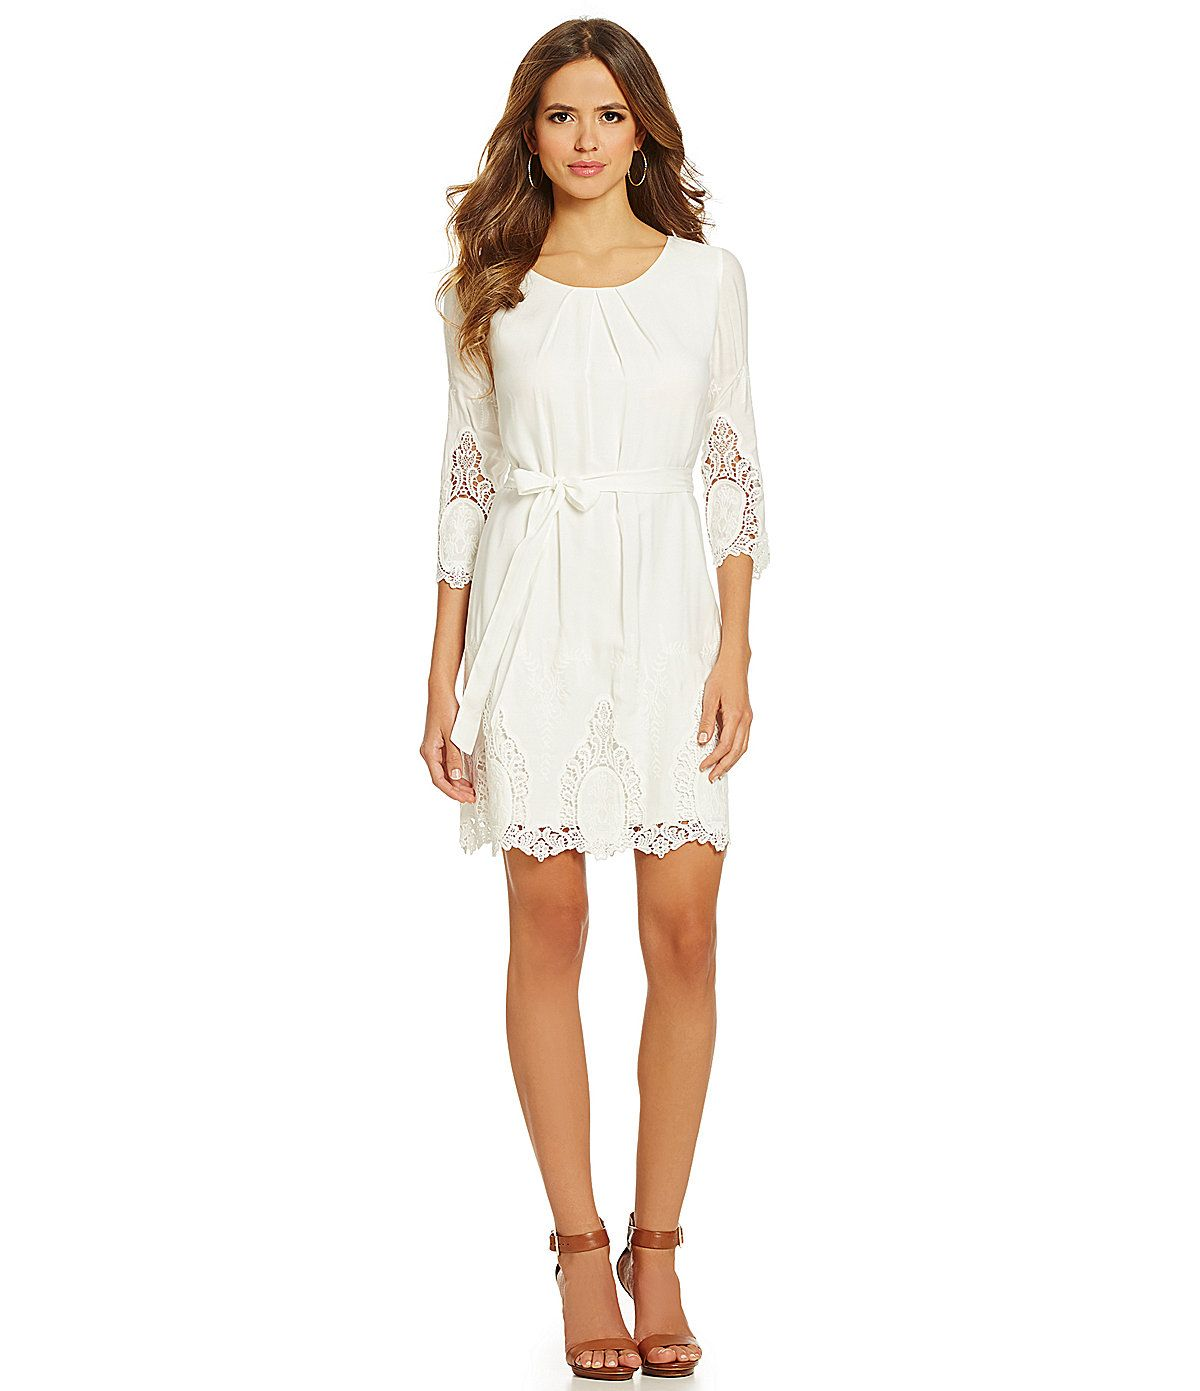 Gianni Bini Laura Dress | Dillards.com | My Style | Pinterest ...